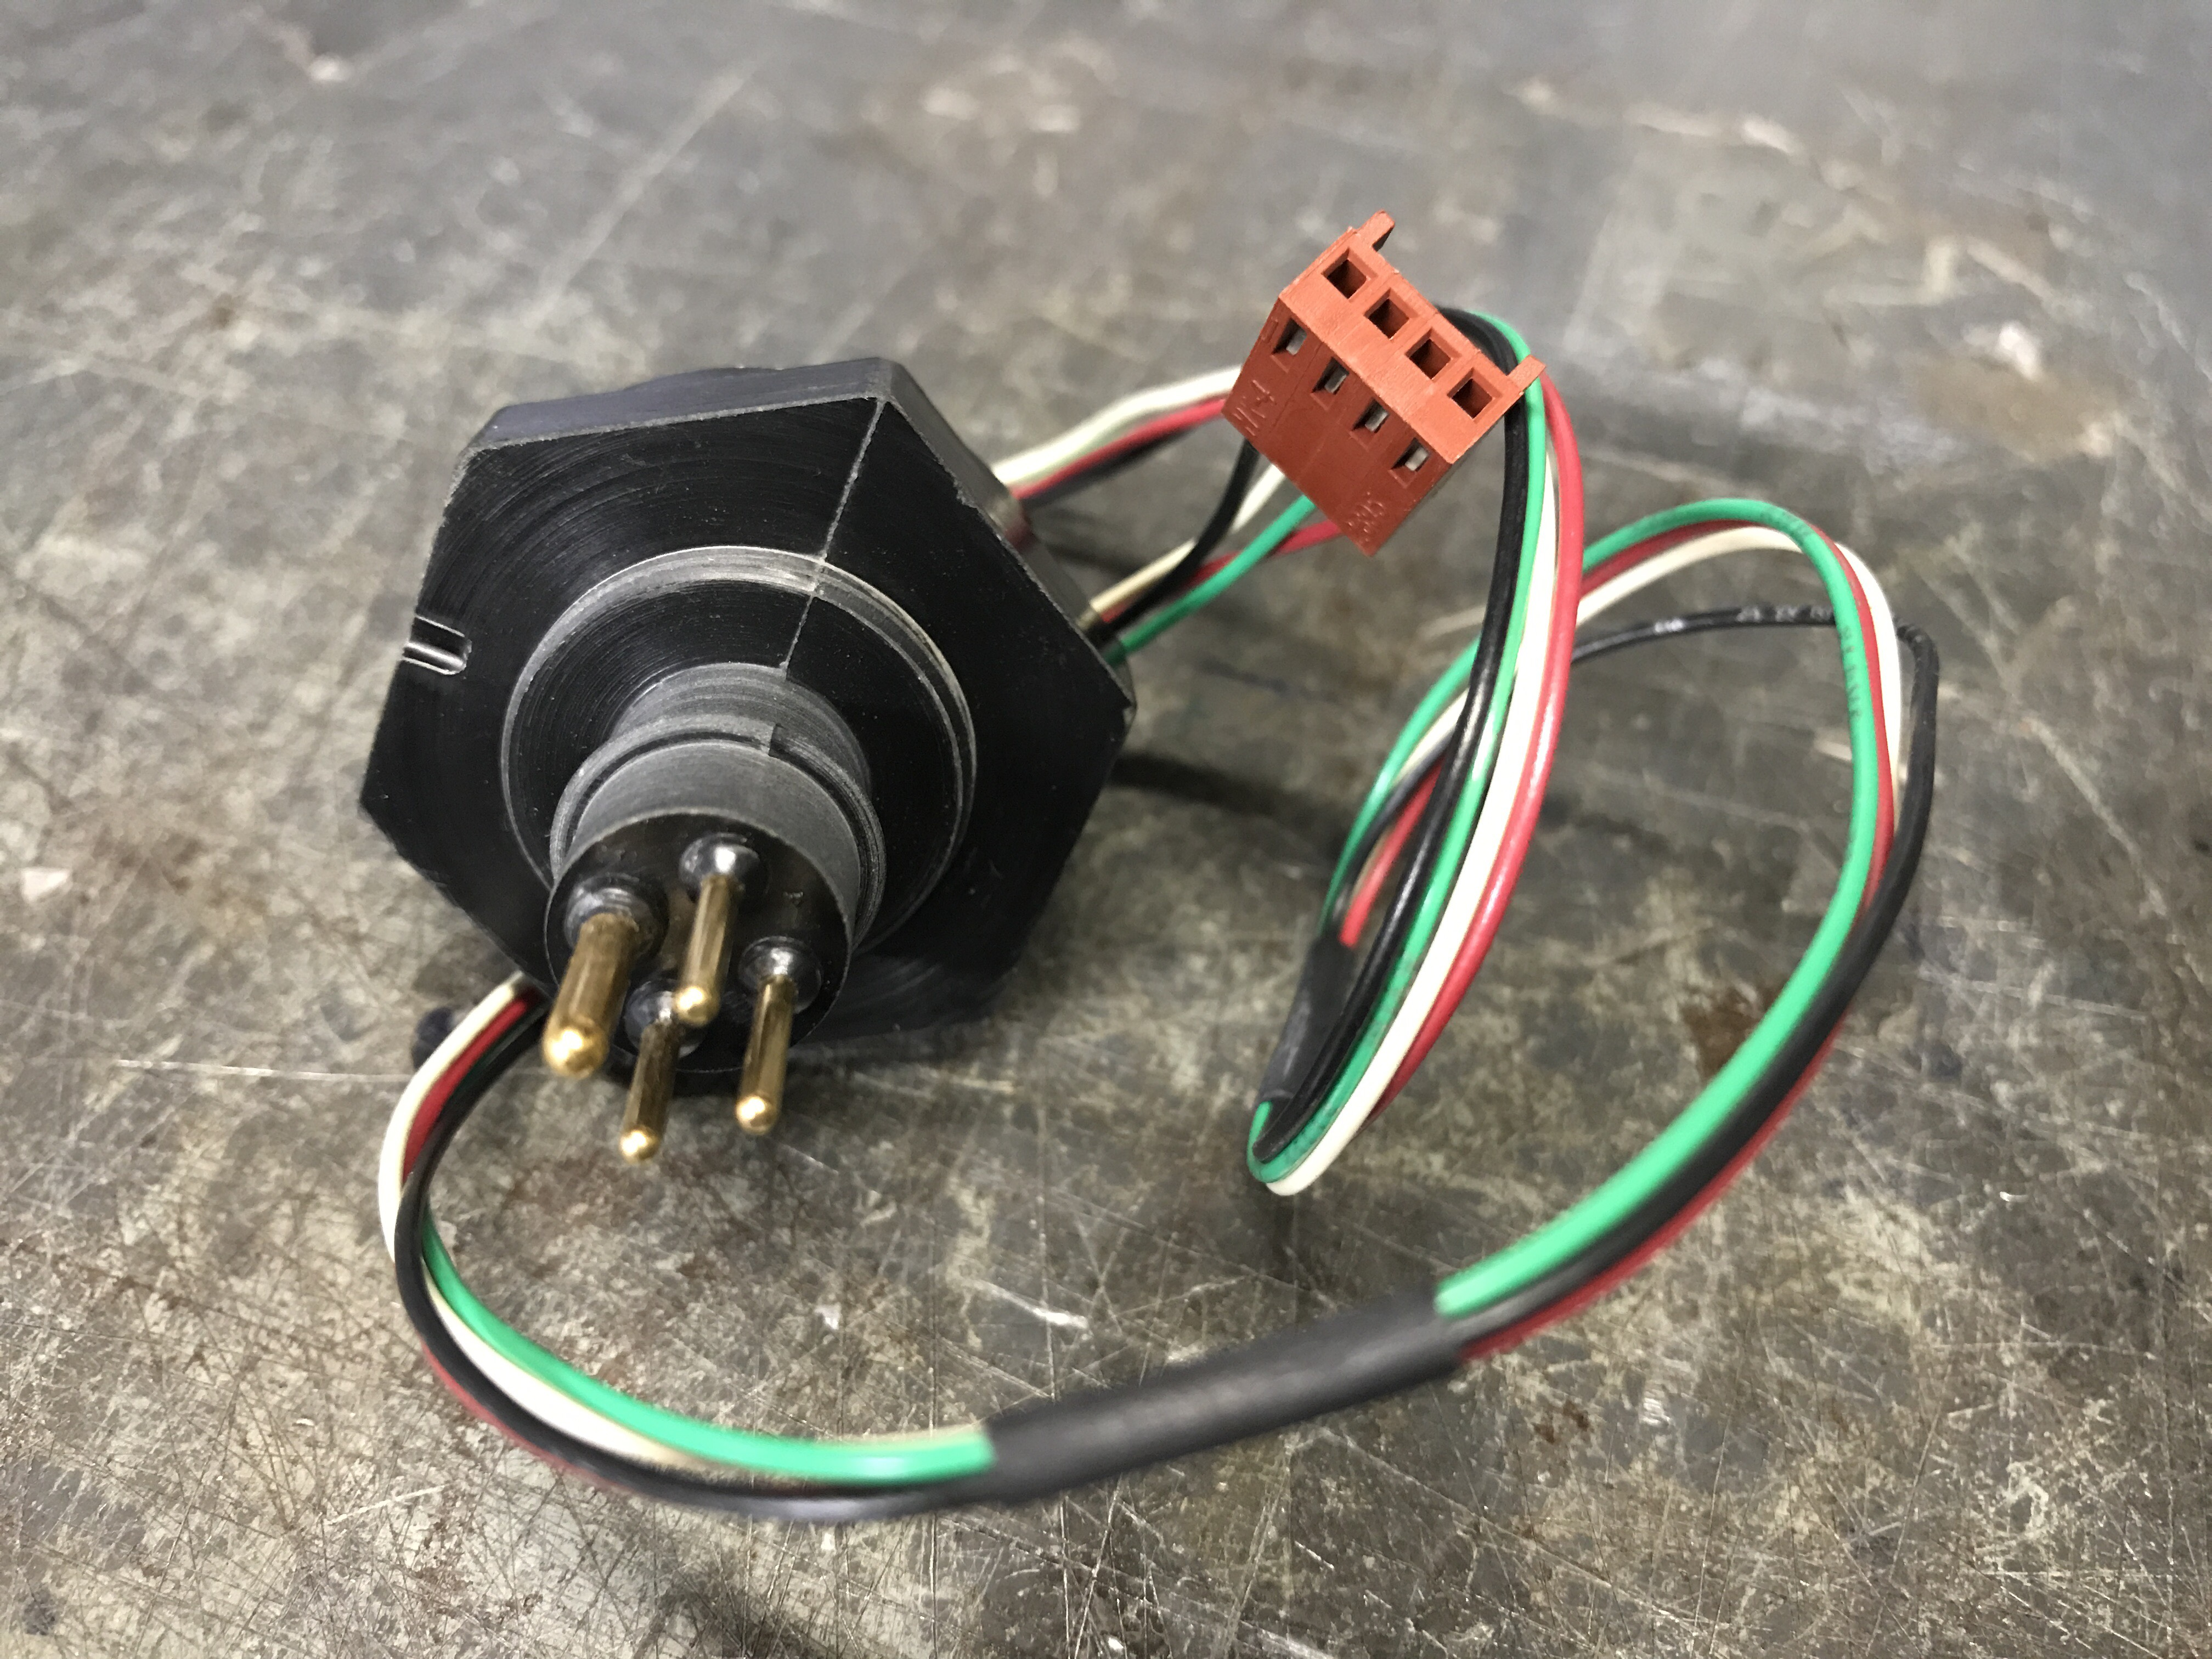 CABLE Assembly MK5 Option